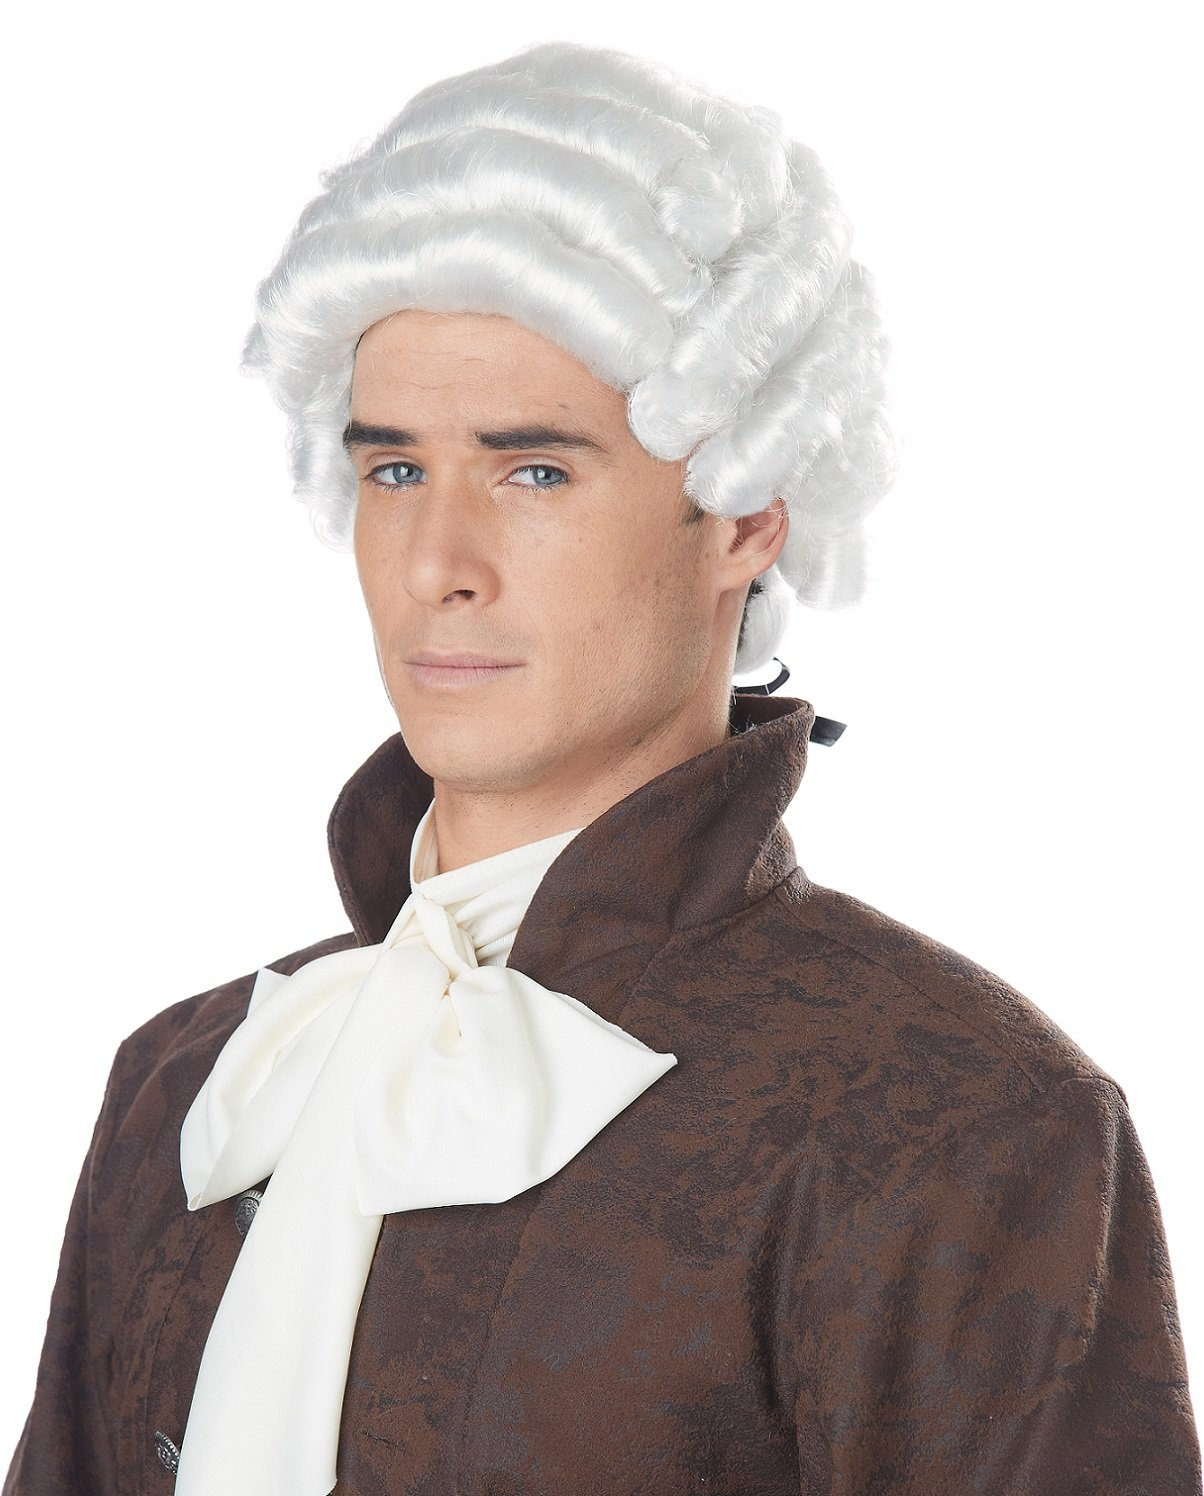 White Colonial Style Costume Wig w//Ponytail for Adults Kids Mens White Colonial Wig